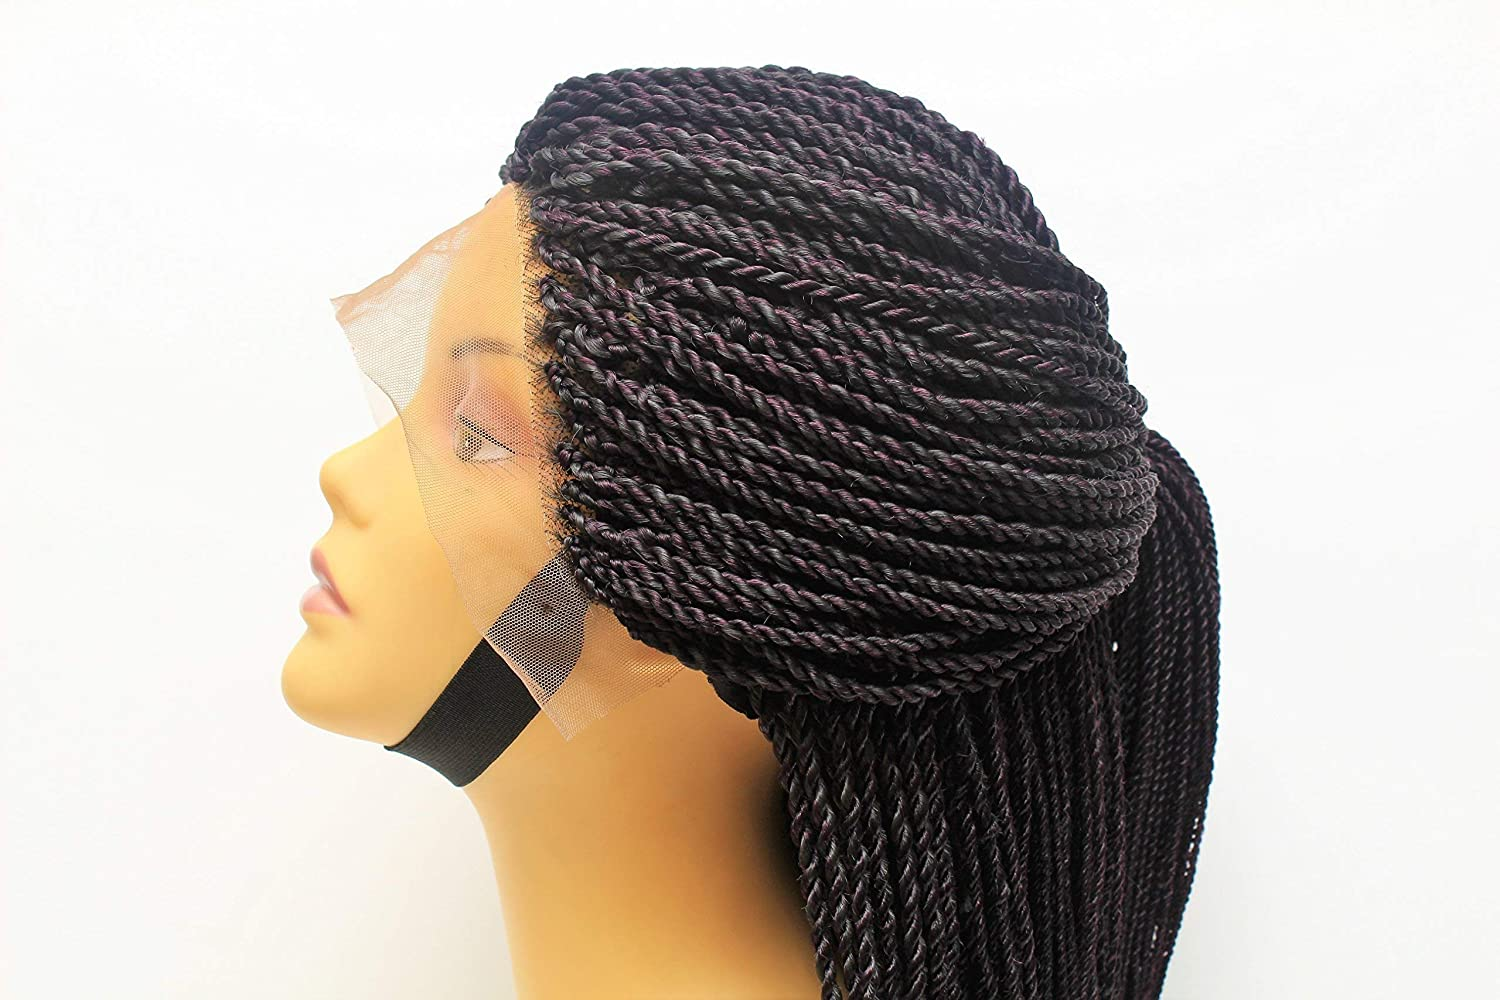 Senegalese Twist Wig Braided Wig For Black Women Lace Front Braided Wig